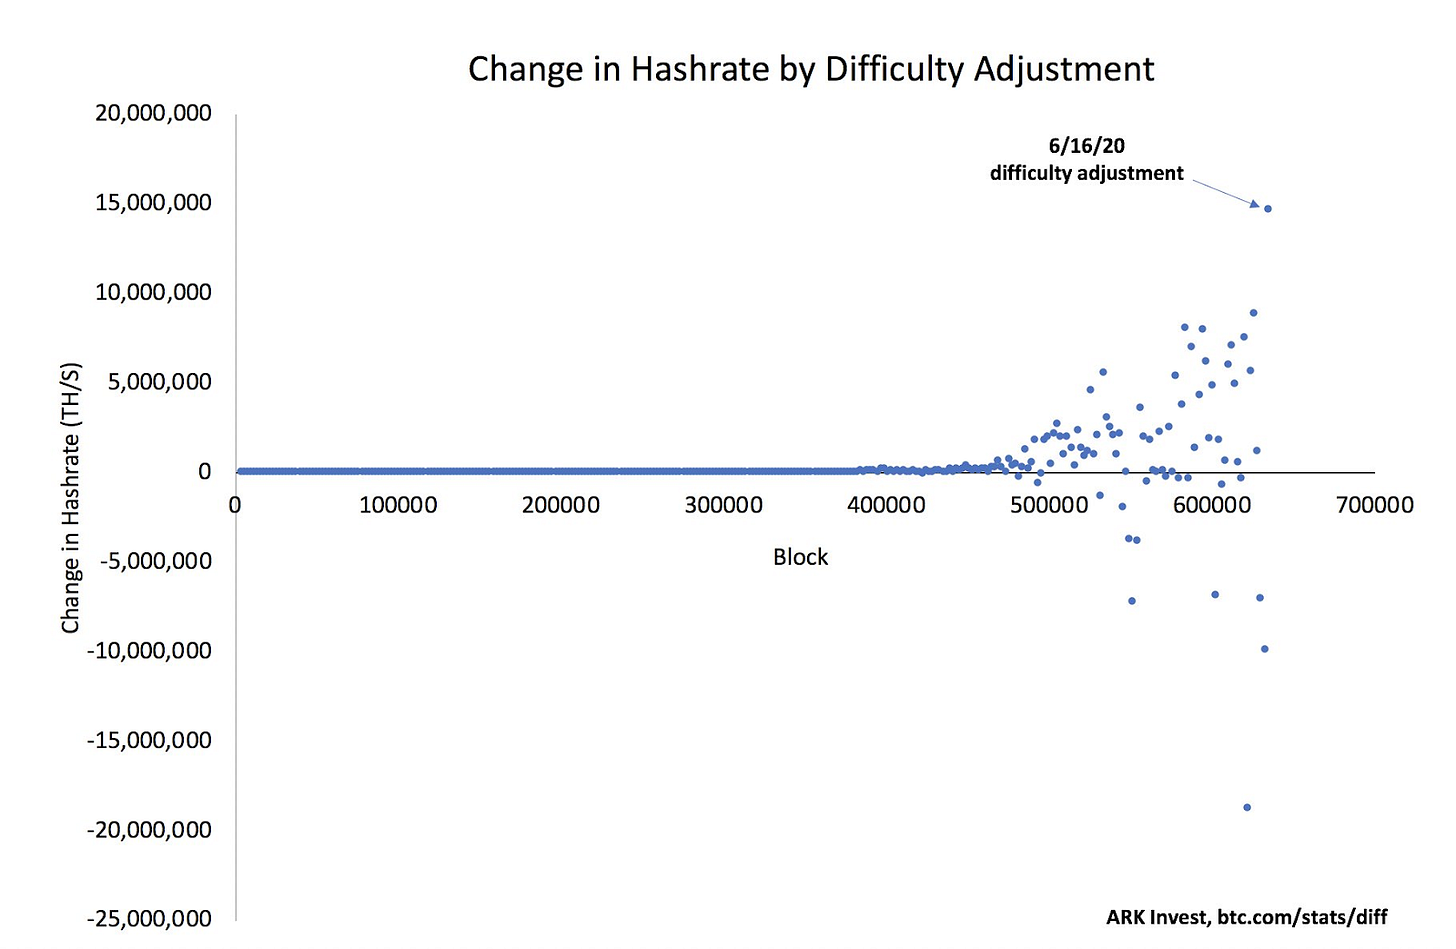 Change in hashrate versus difficulty adjustment